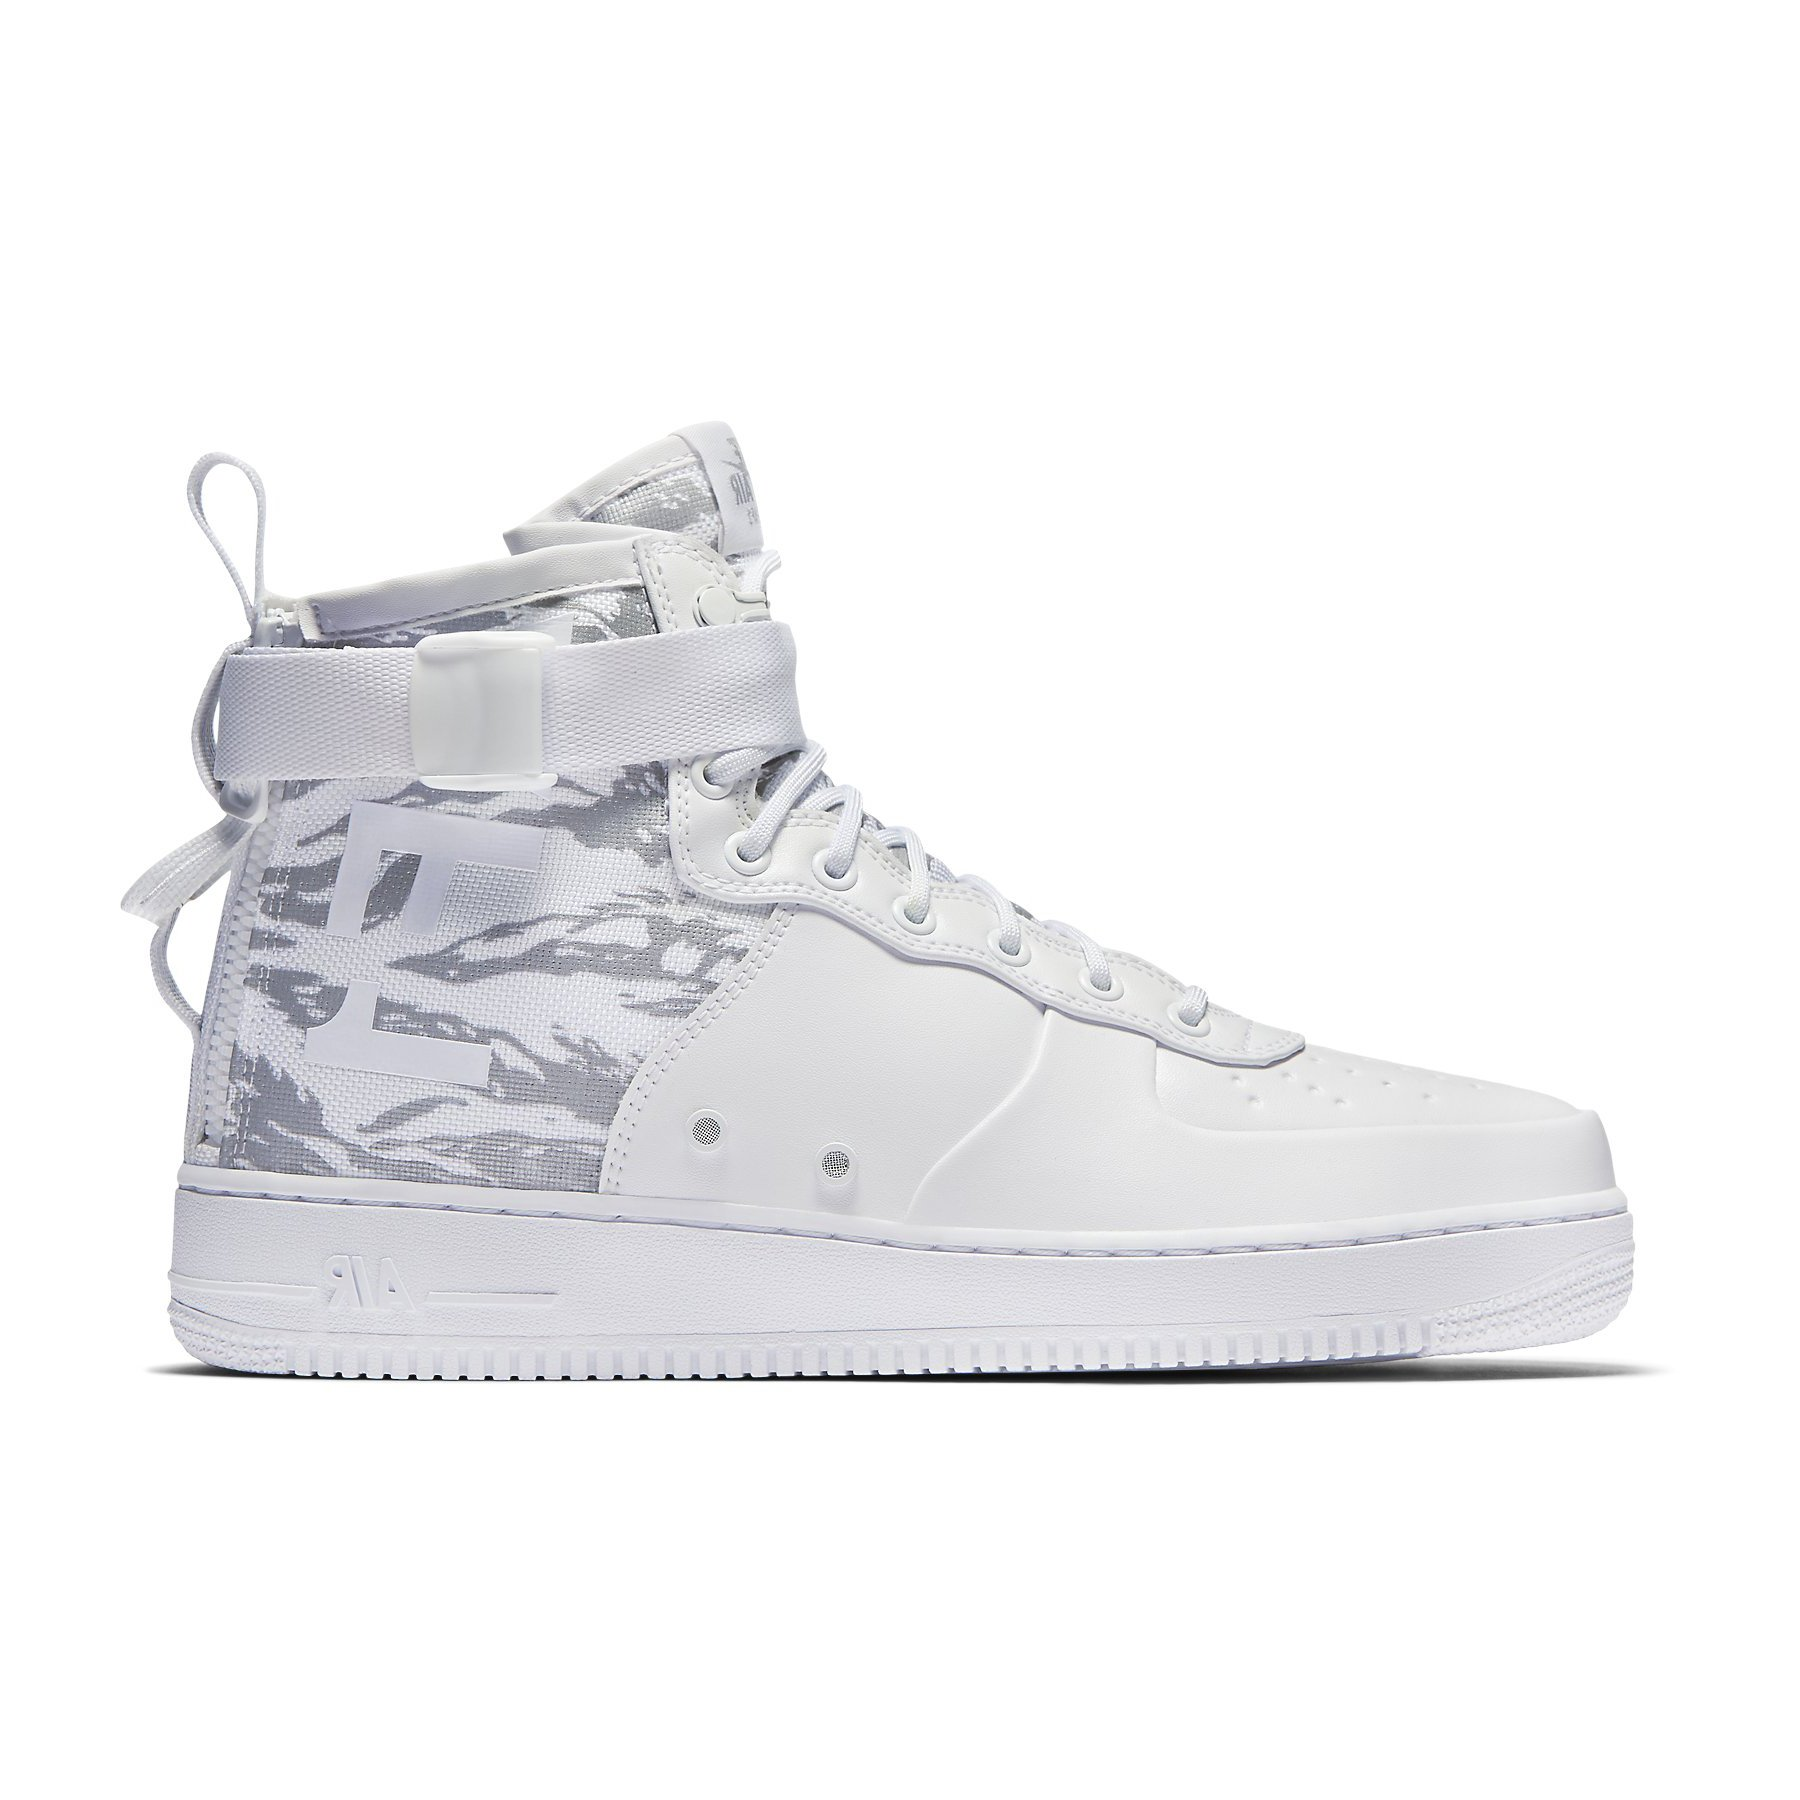 83c3223704 Galleon - NIKE Mens SF Air Force 1 Winter Mid Premium Shoes White White  AA1129-100 Size 9.5